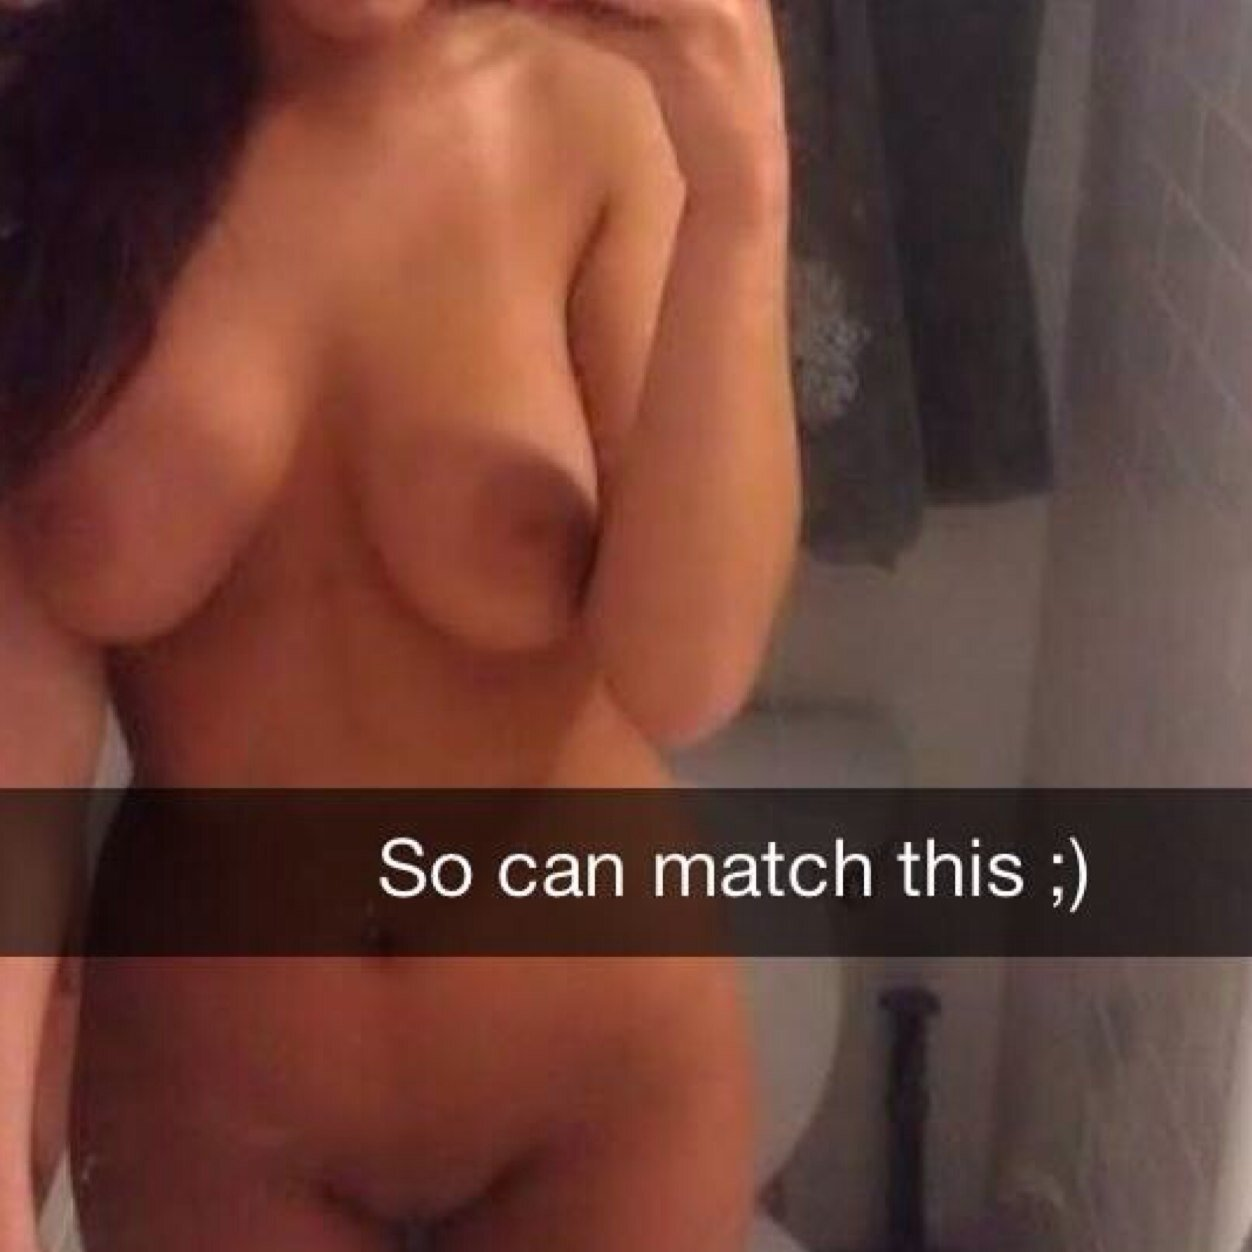 naked girls snapchat